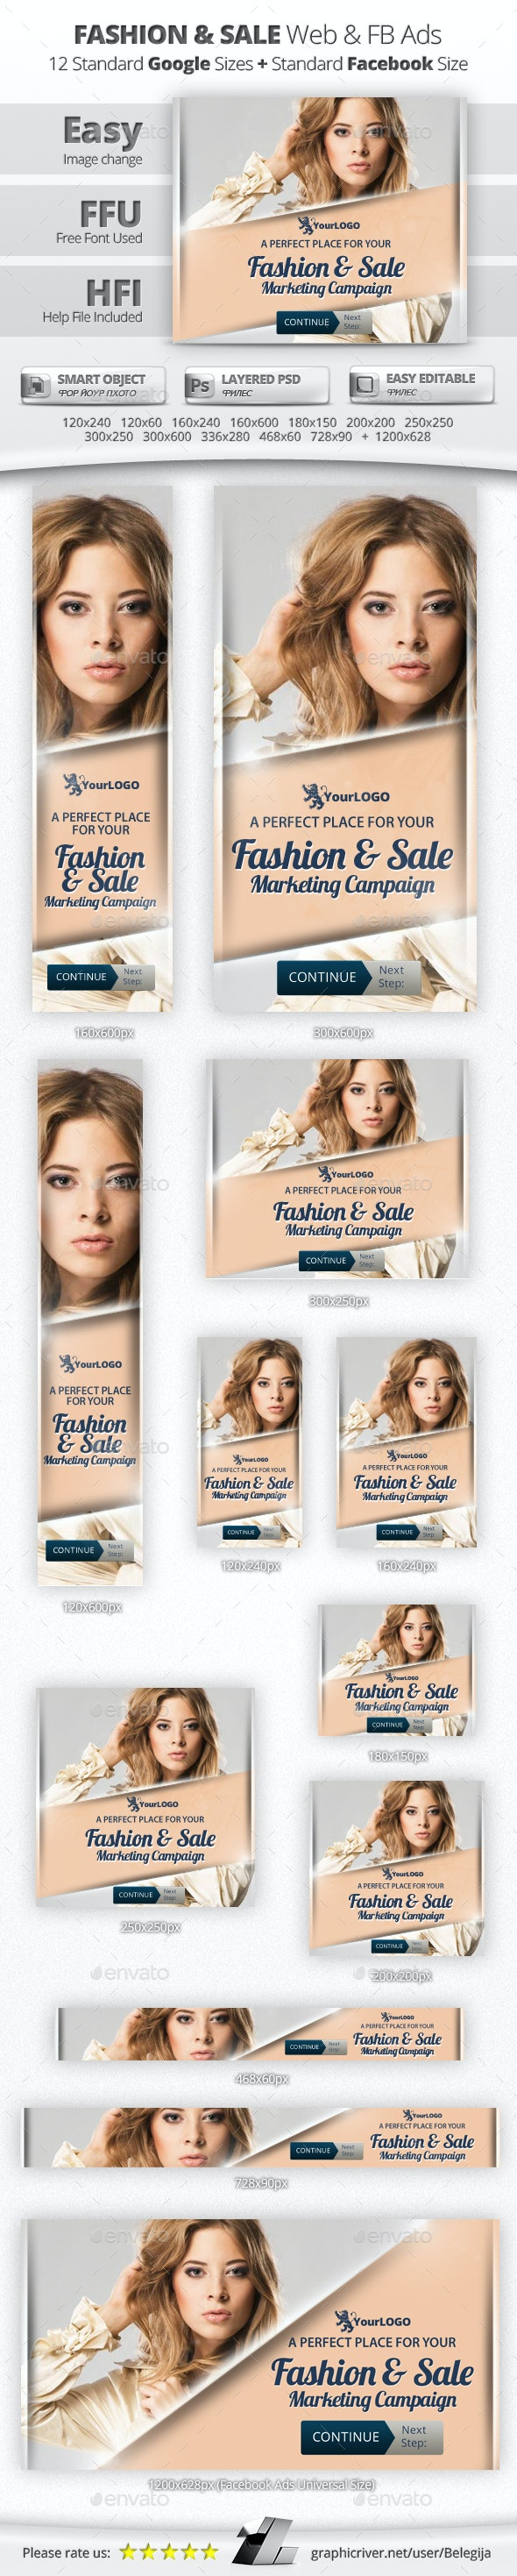 Fashion & Sale Web & Facebook Banners - Banners & Ads Web Elements